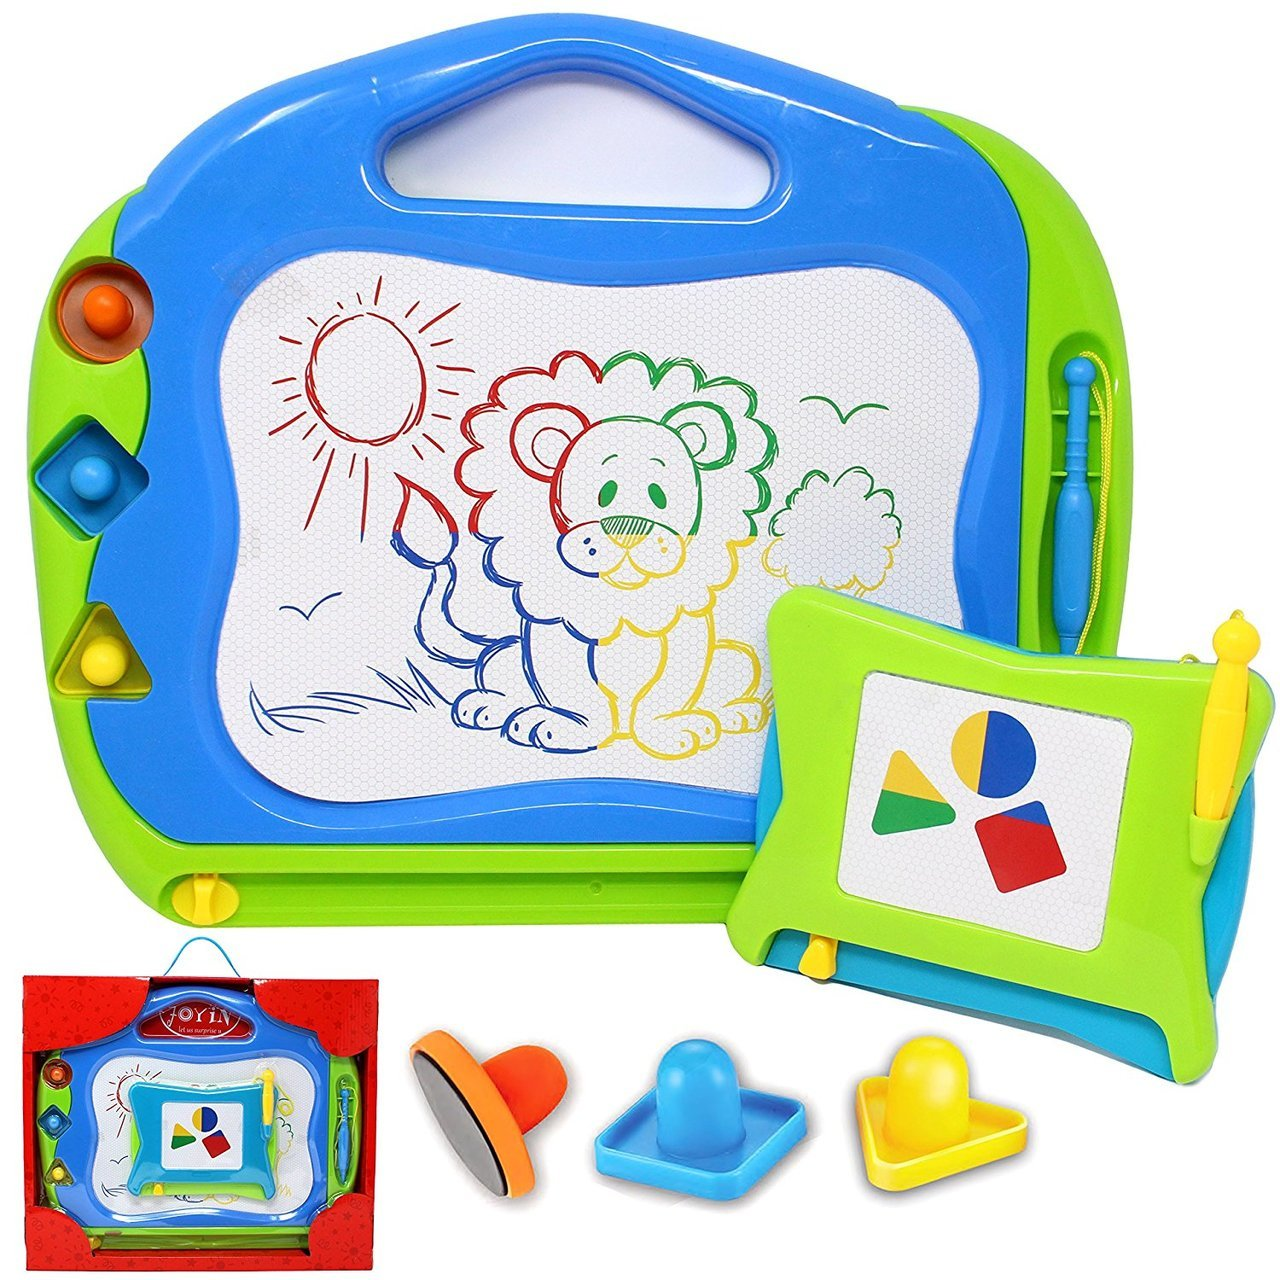 Magnetic Drawing Board Colorful Magna Doodle